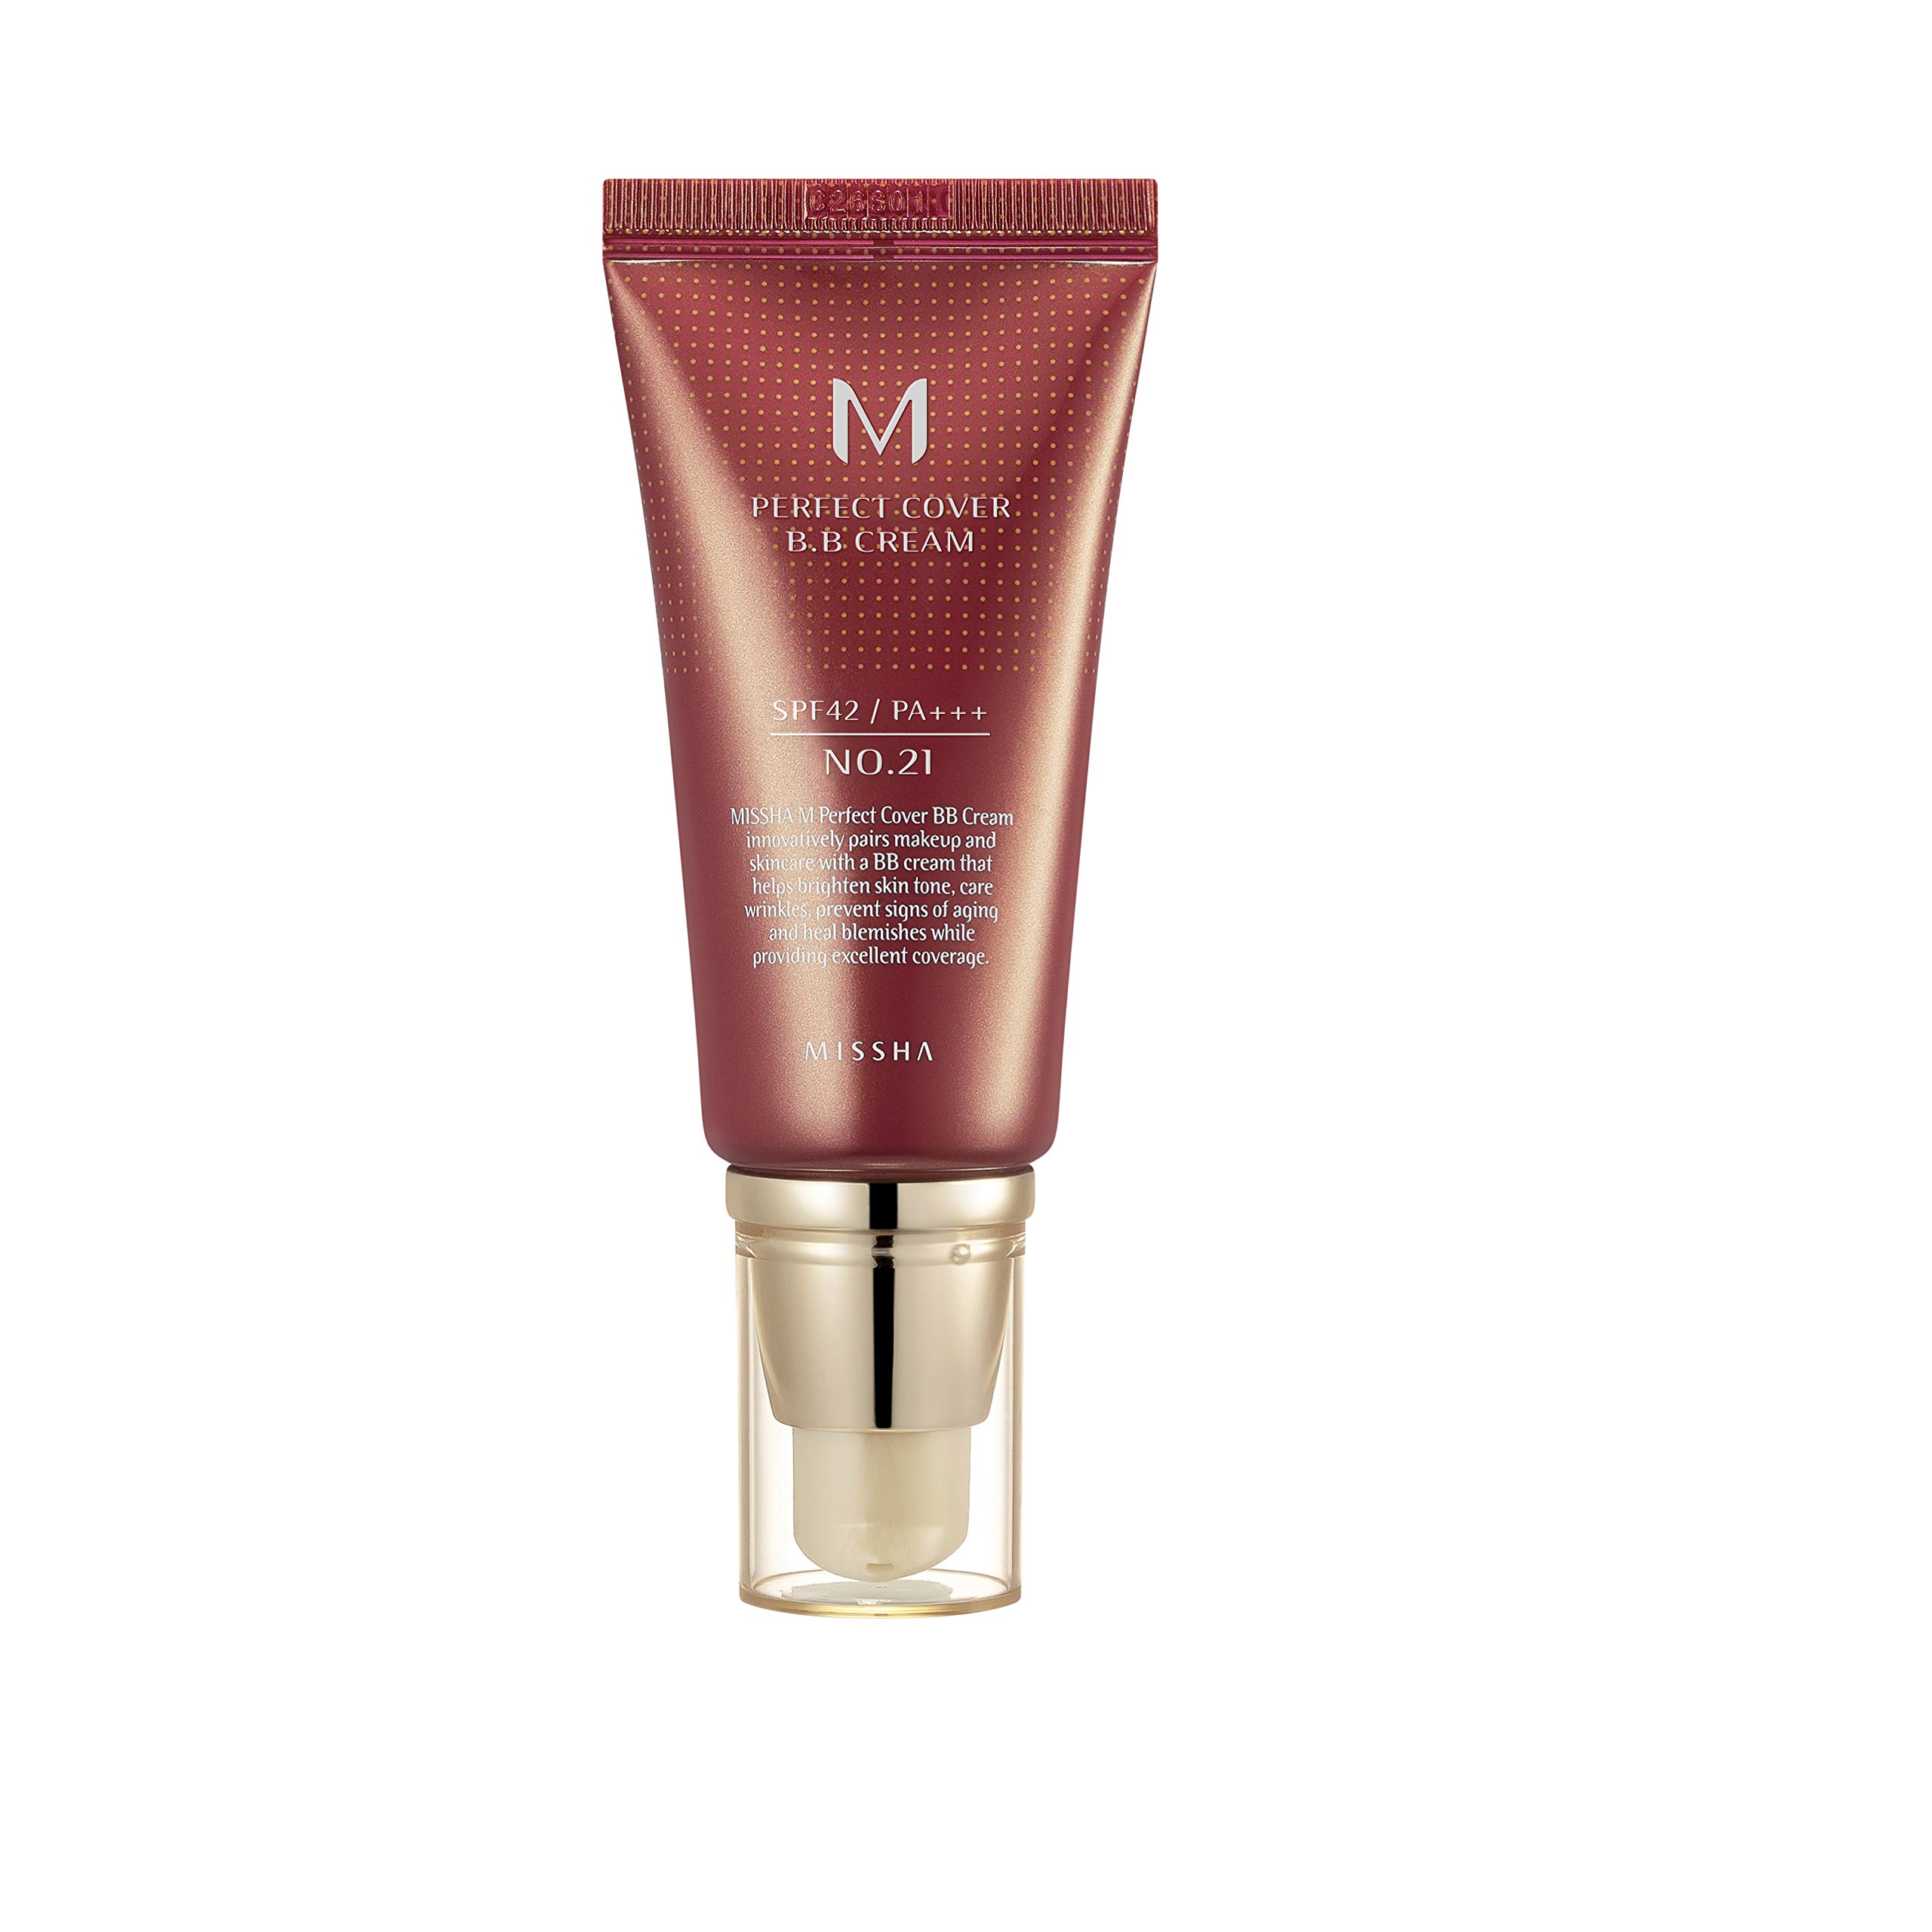 MISSHA M PERFECT COVER BB CREAM #21 SPF 42 PA+++ 50ml-Lightweight, Multi-Function, High Coverage Makeup to help infuse moisture for firmer-looking skin with reduction in appearance of fine line